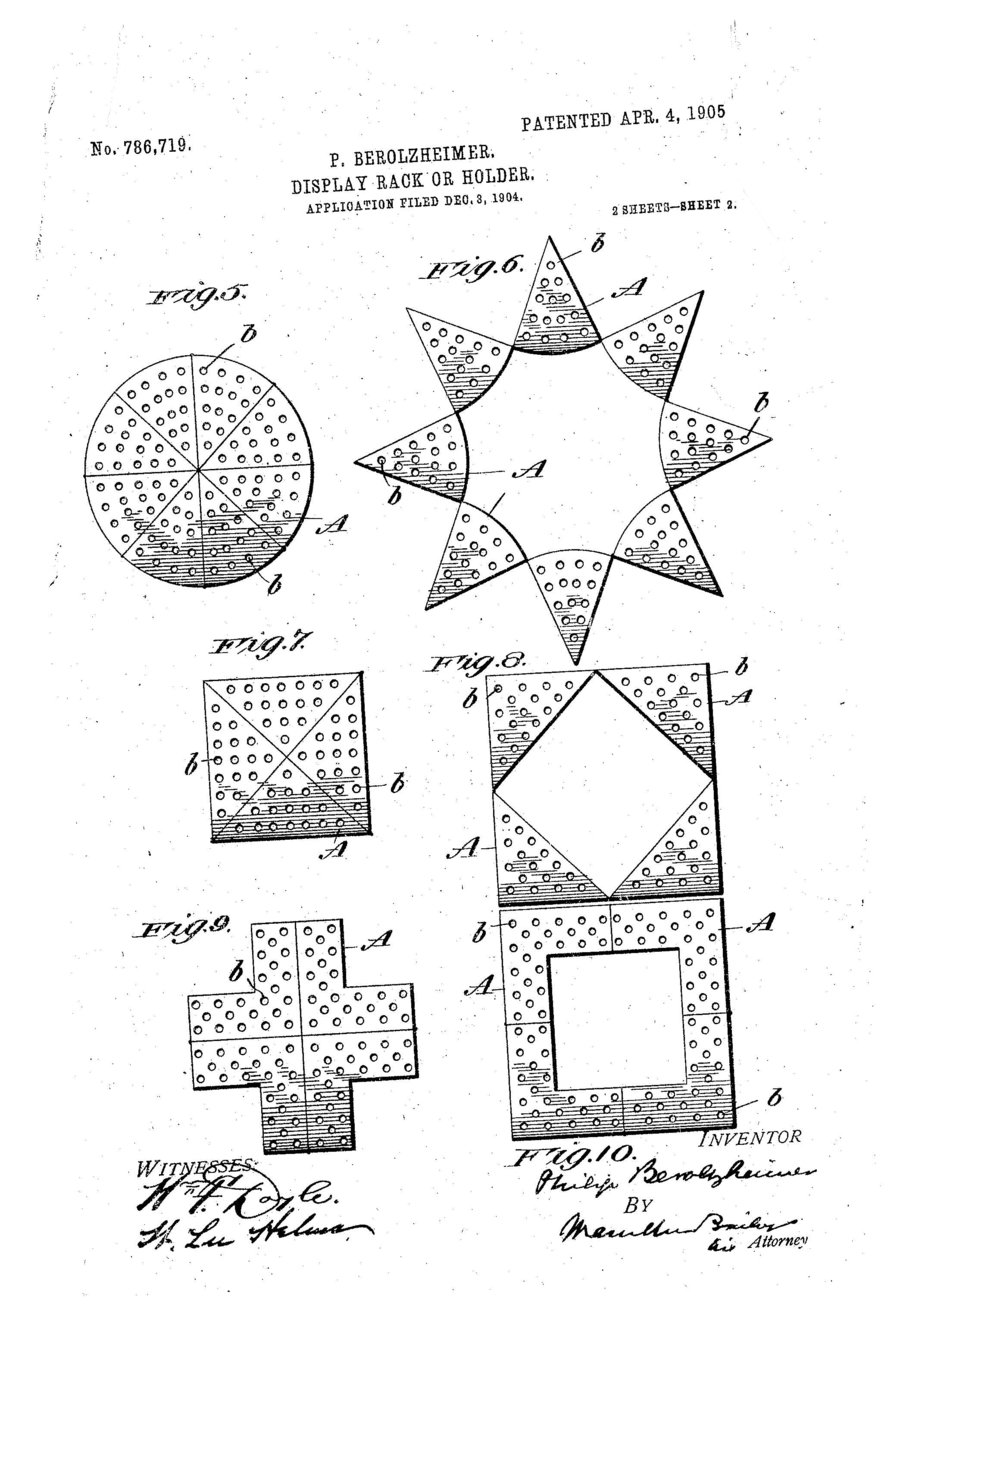 4 - PB 1905 Pencil Display Patent_Page_2.jpg